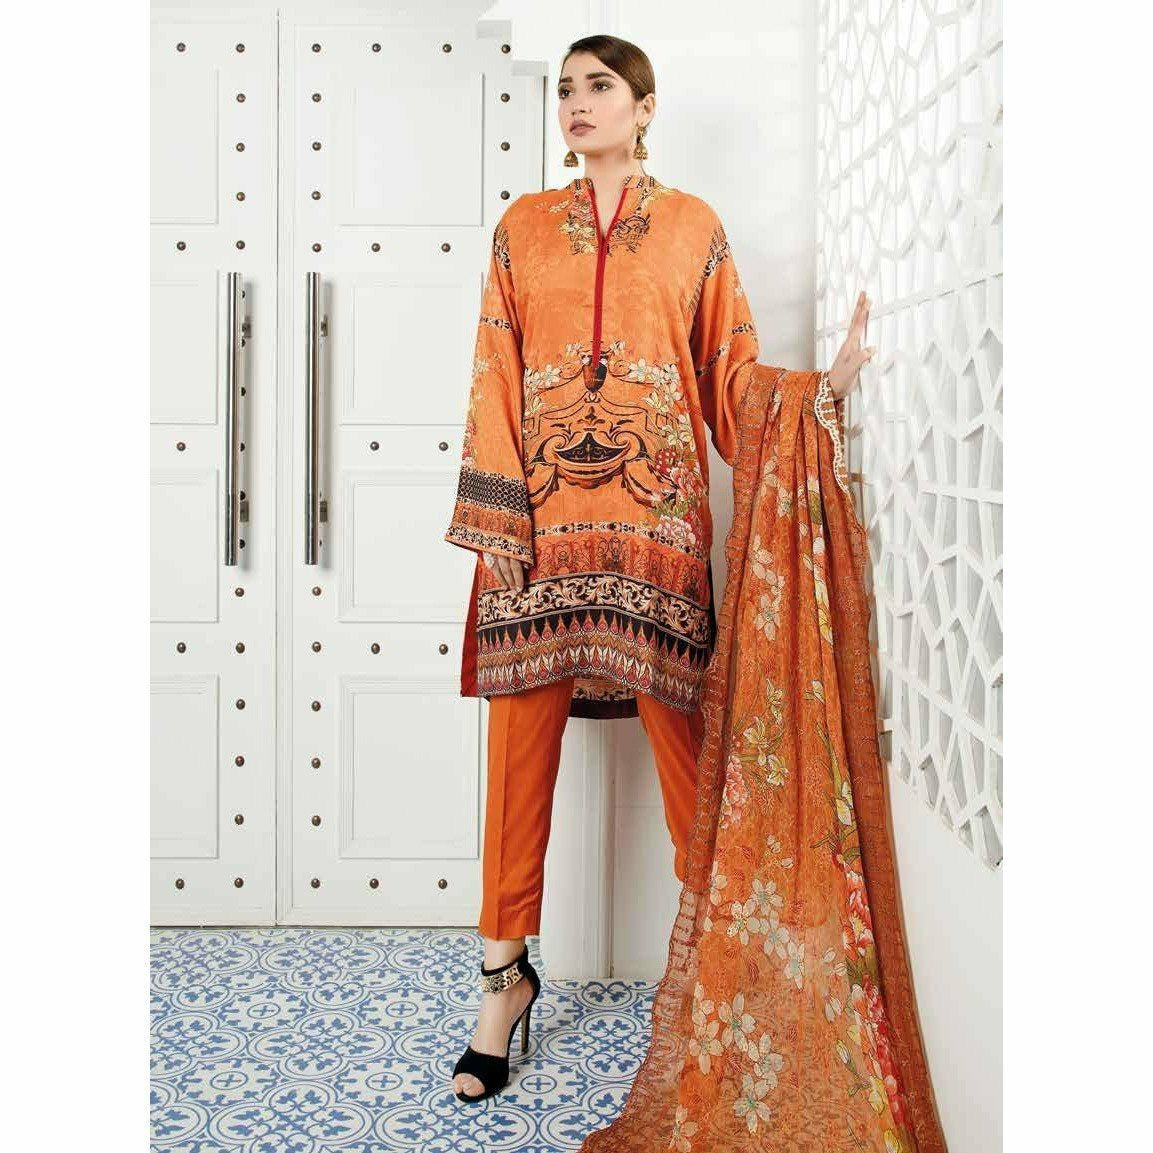 Zebaish Abroo Digital Linen 2020 - Z07